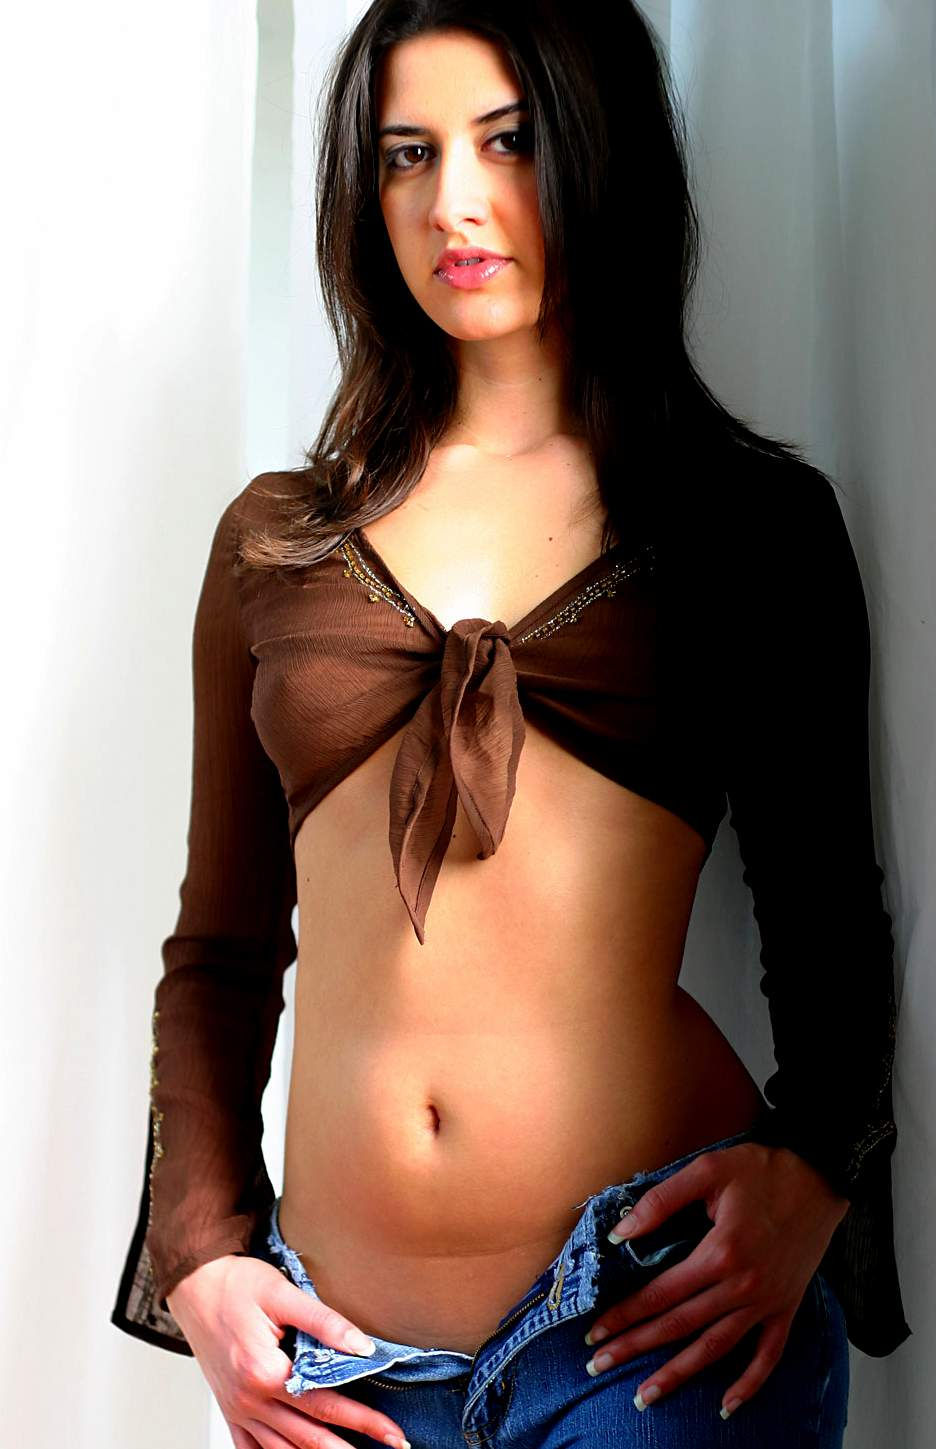 Pune Escorts, Independent Call Girls, Escort service in Pune